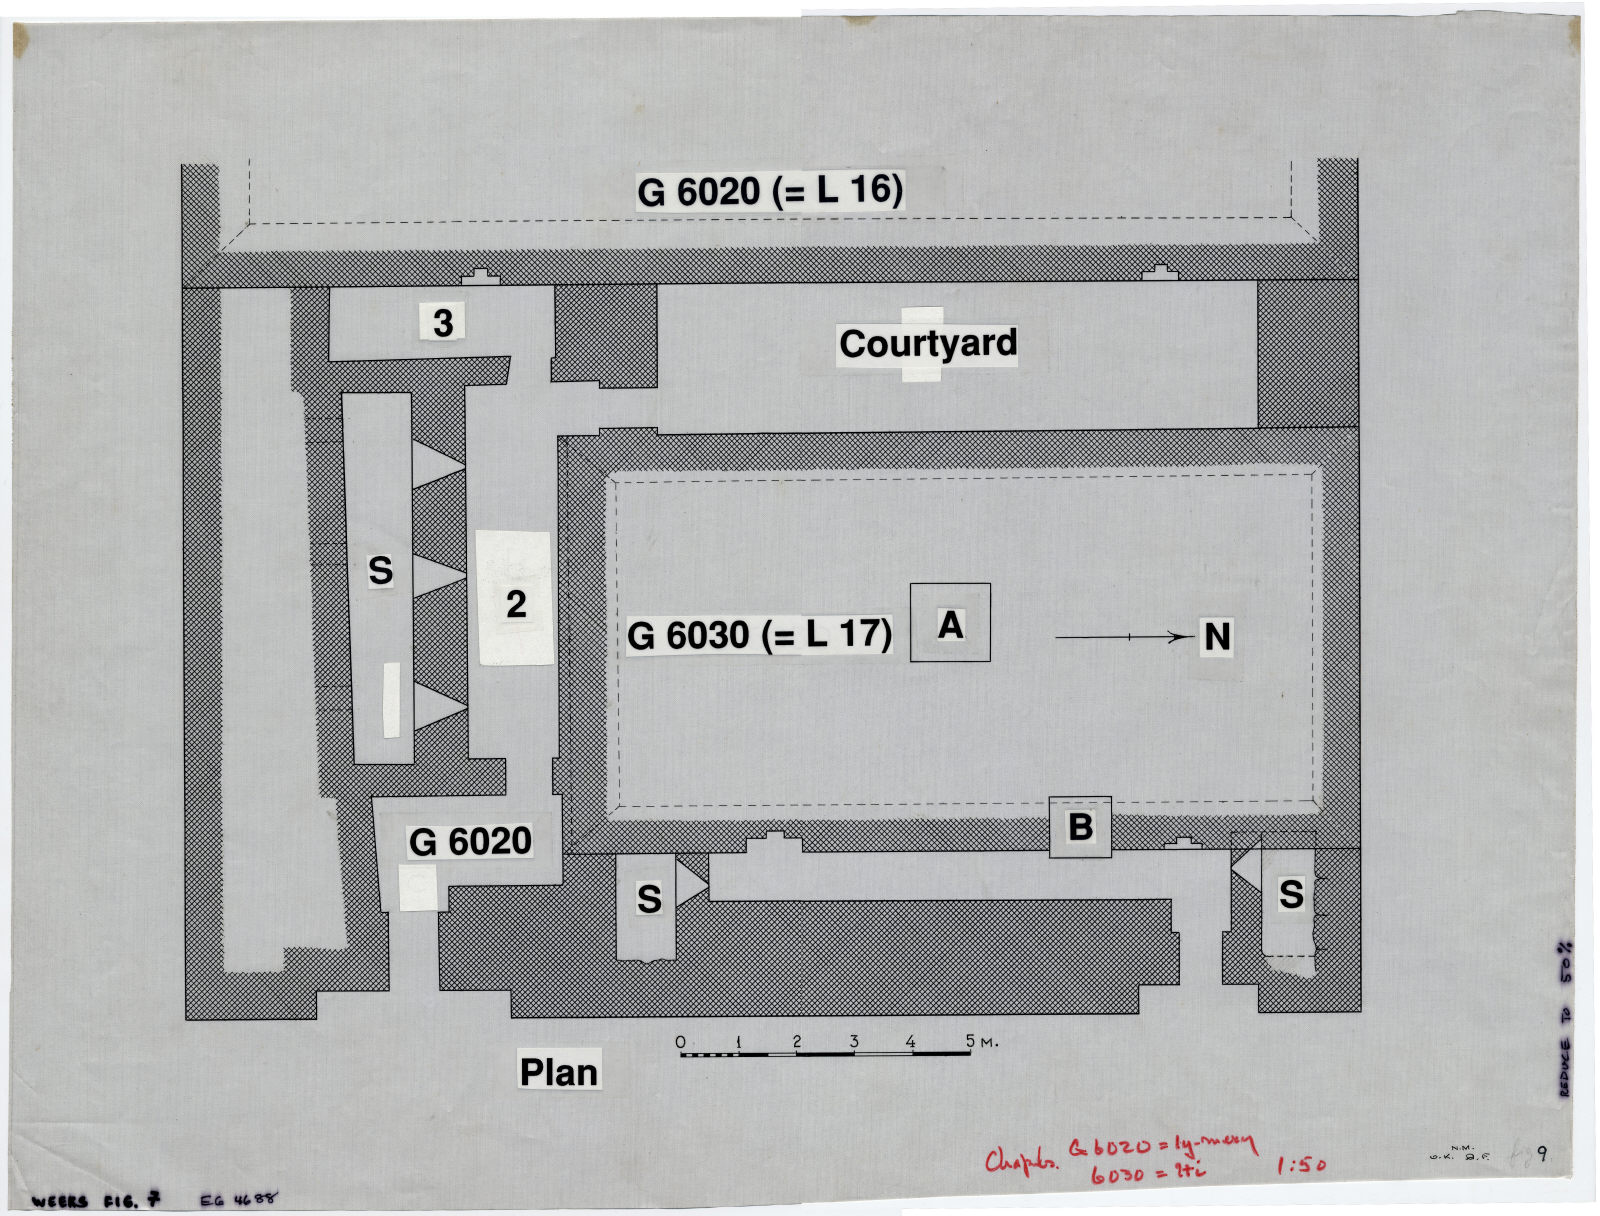 Maps and plans: G 6020, Plan